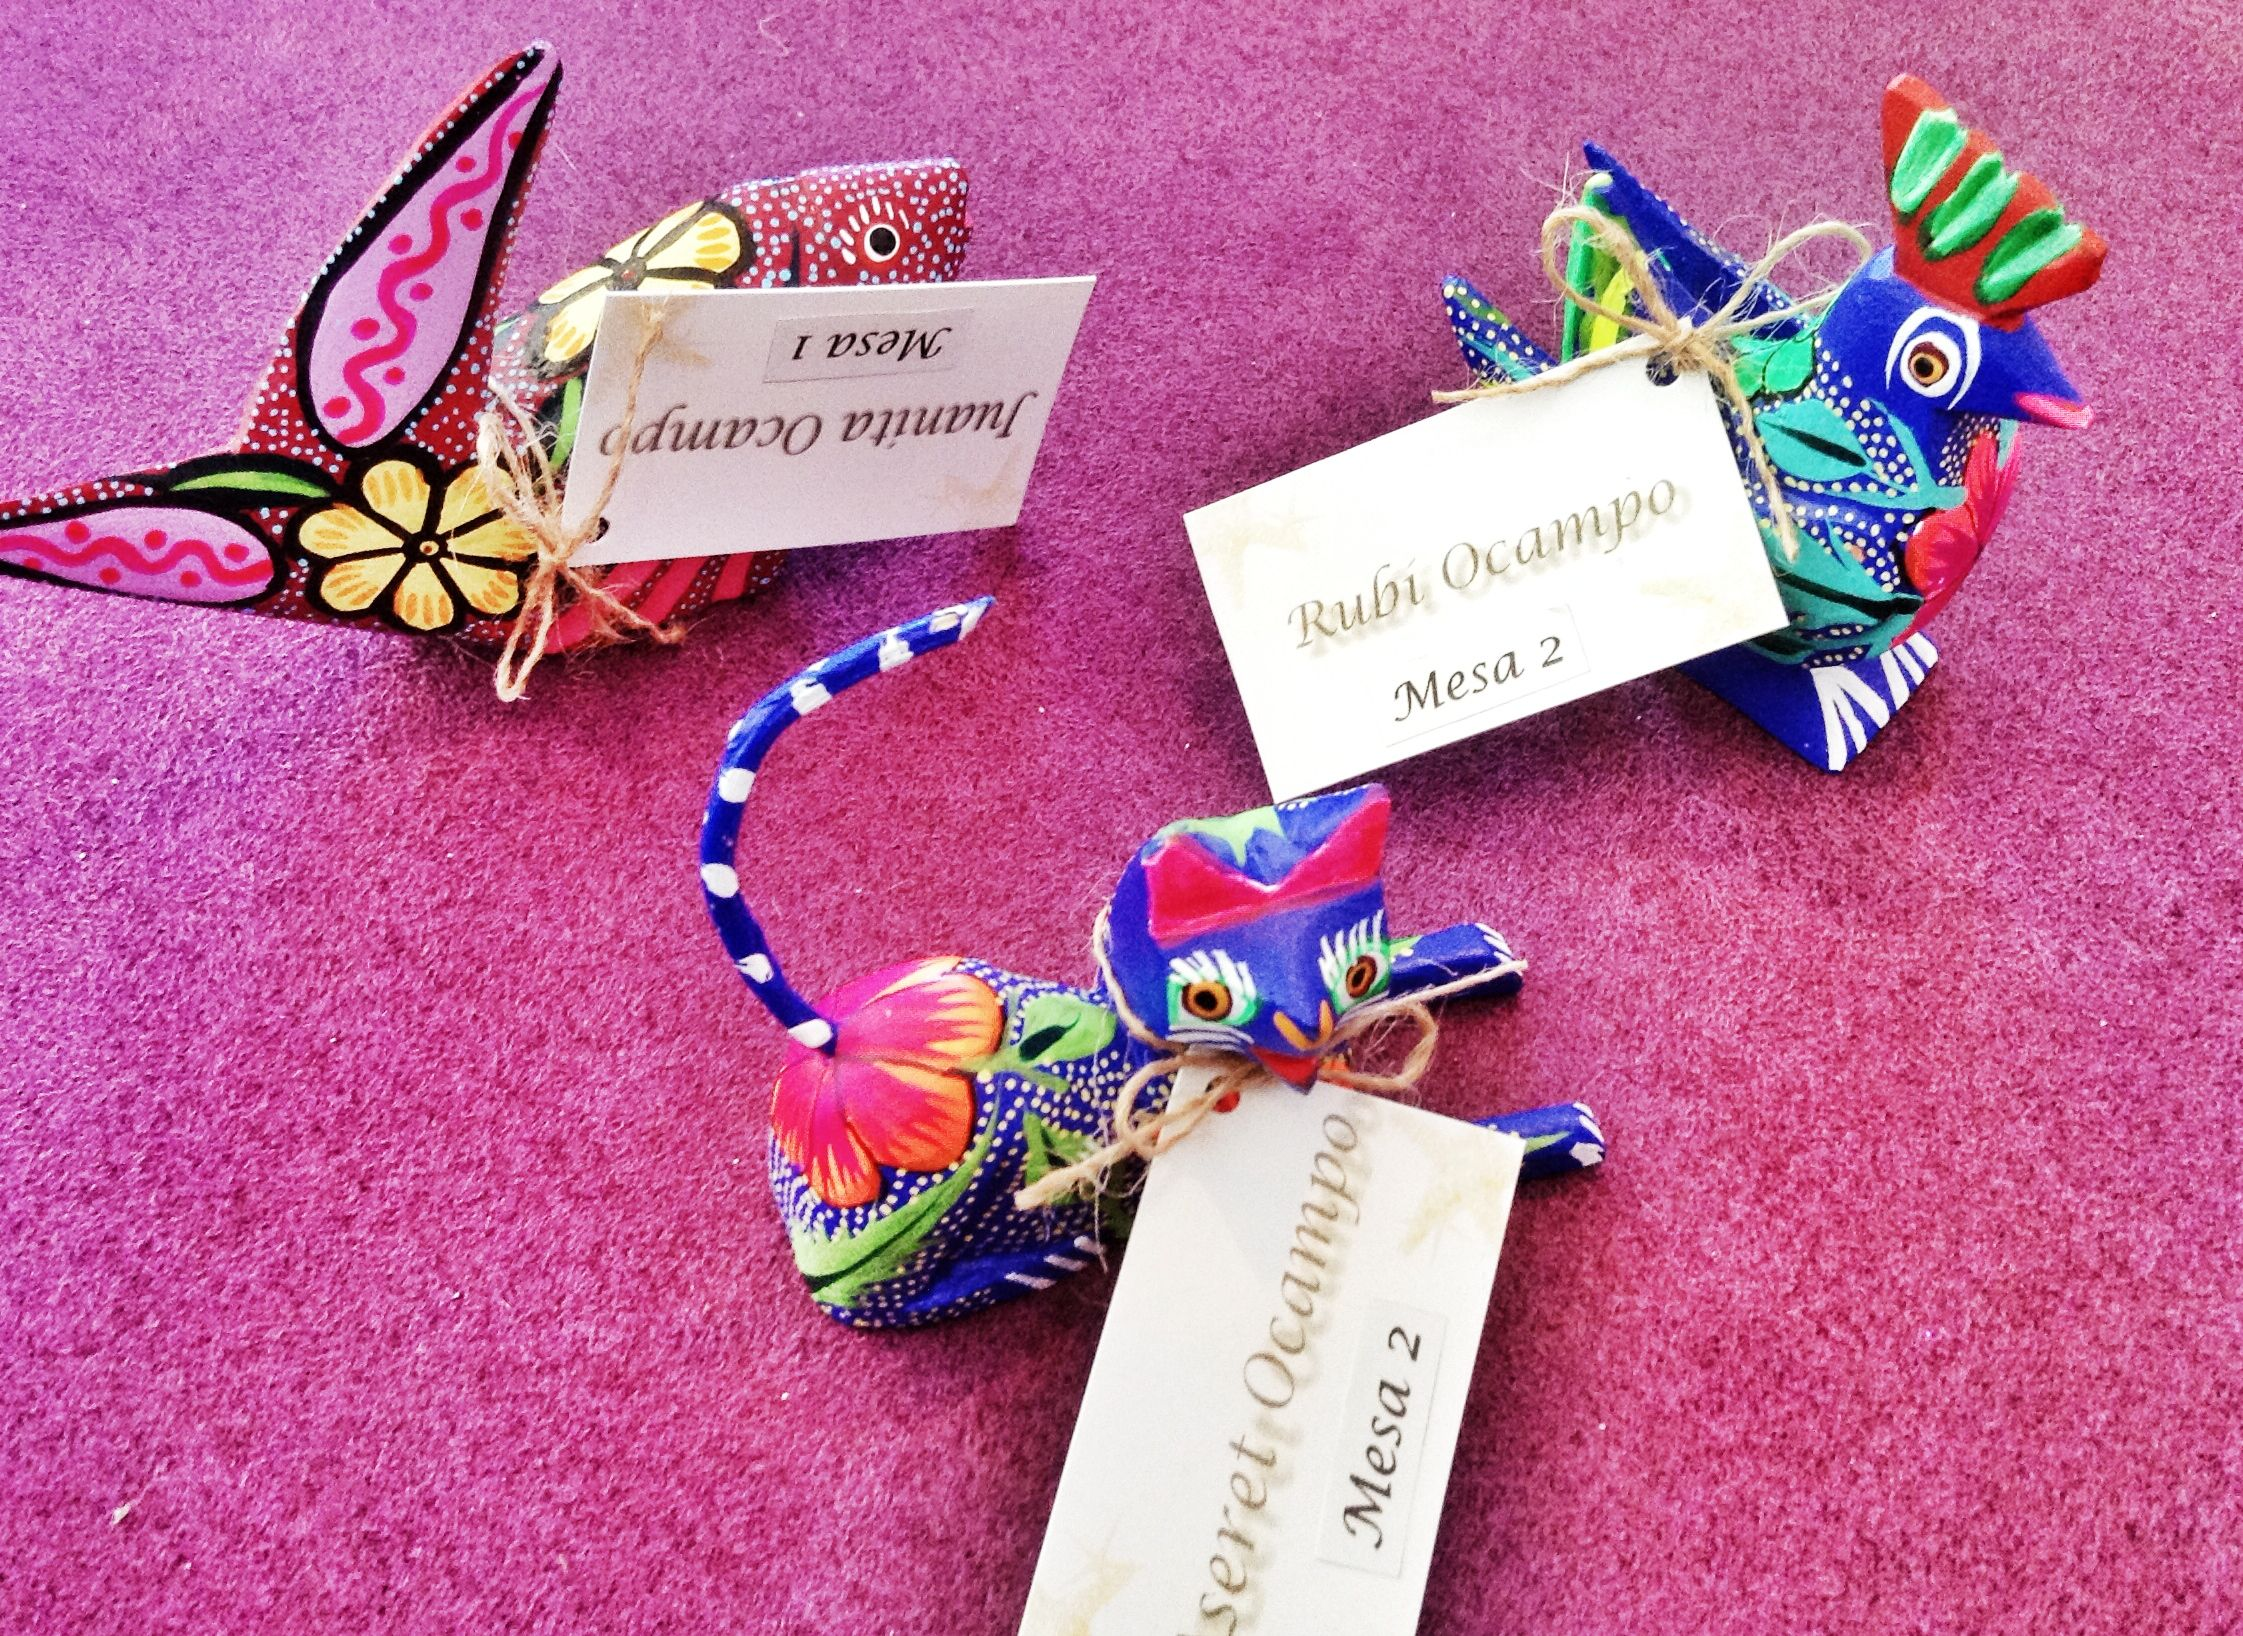 Hermosos Mini Alebrijes para regalar en tu boda como un detalle muy fino y original mexicano. / original y beautiful mexican wedding favor for your guests